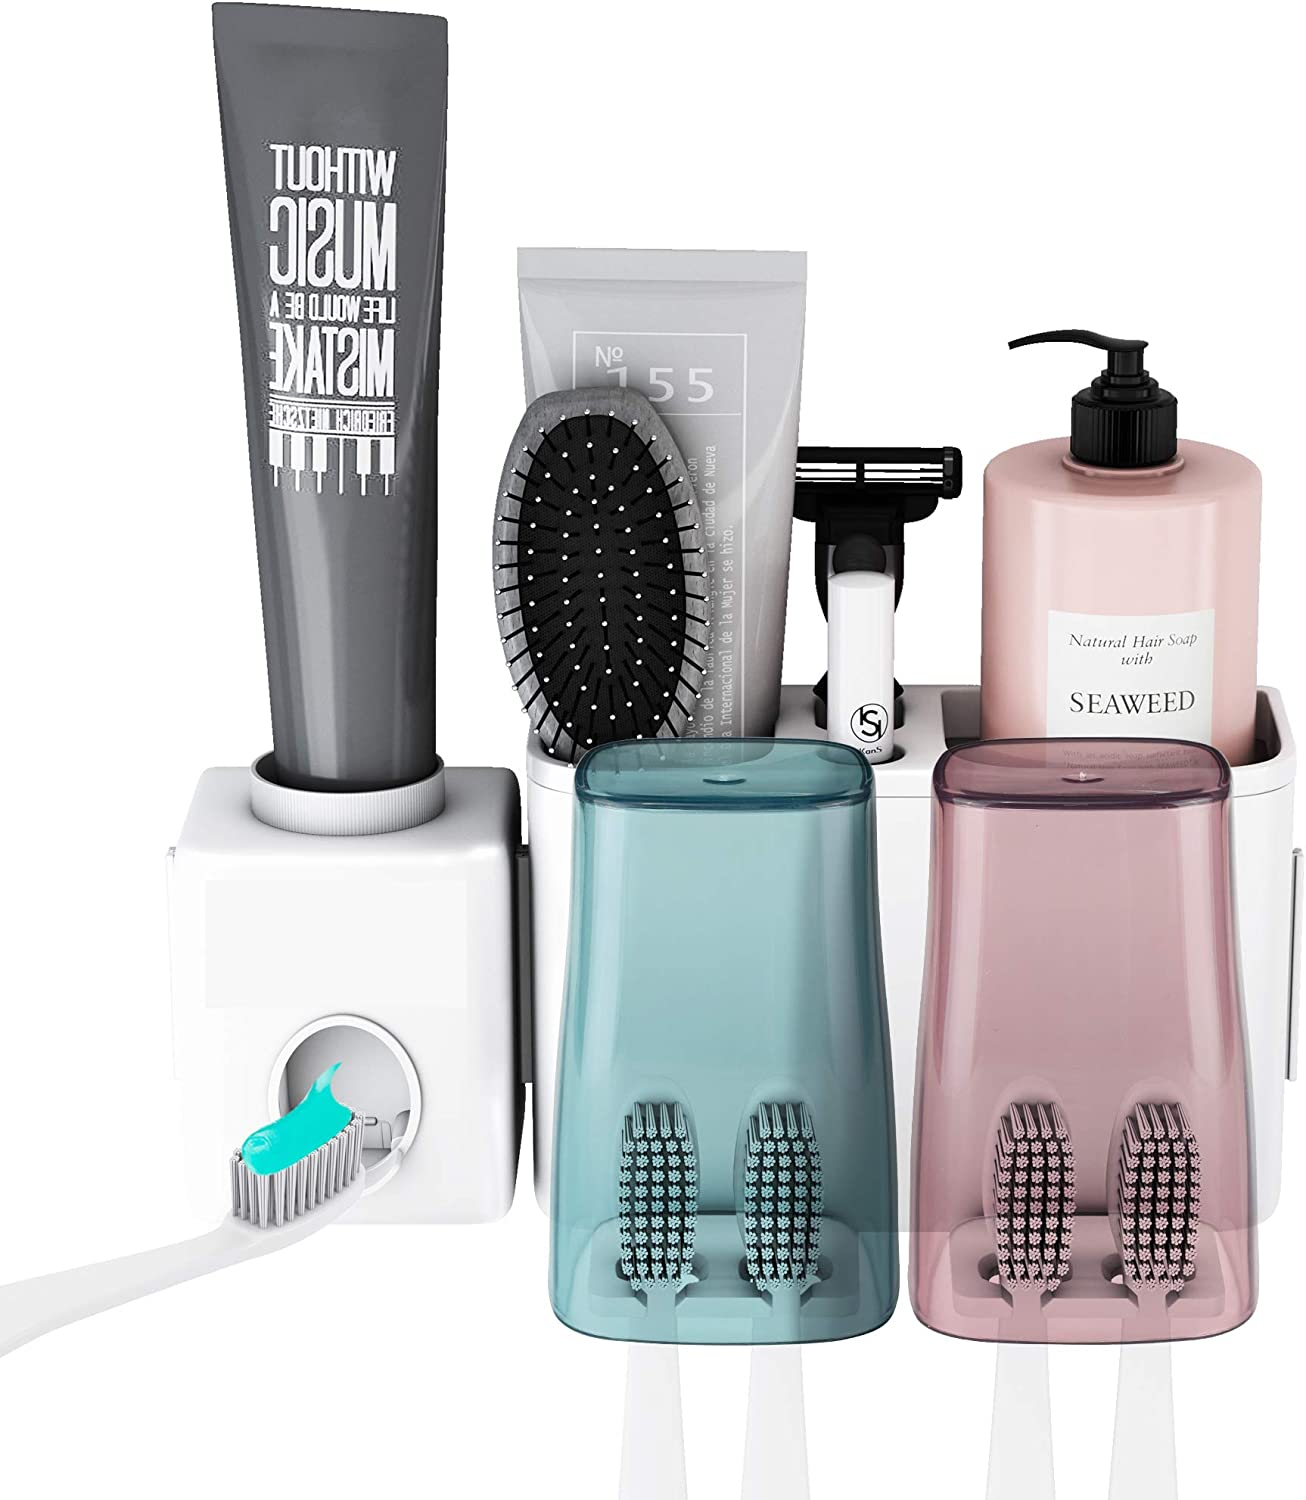 New Household Automatic Toothpaste Dispenser and Tooth Brush Holder Set Tools